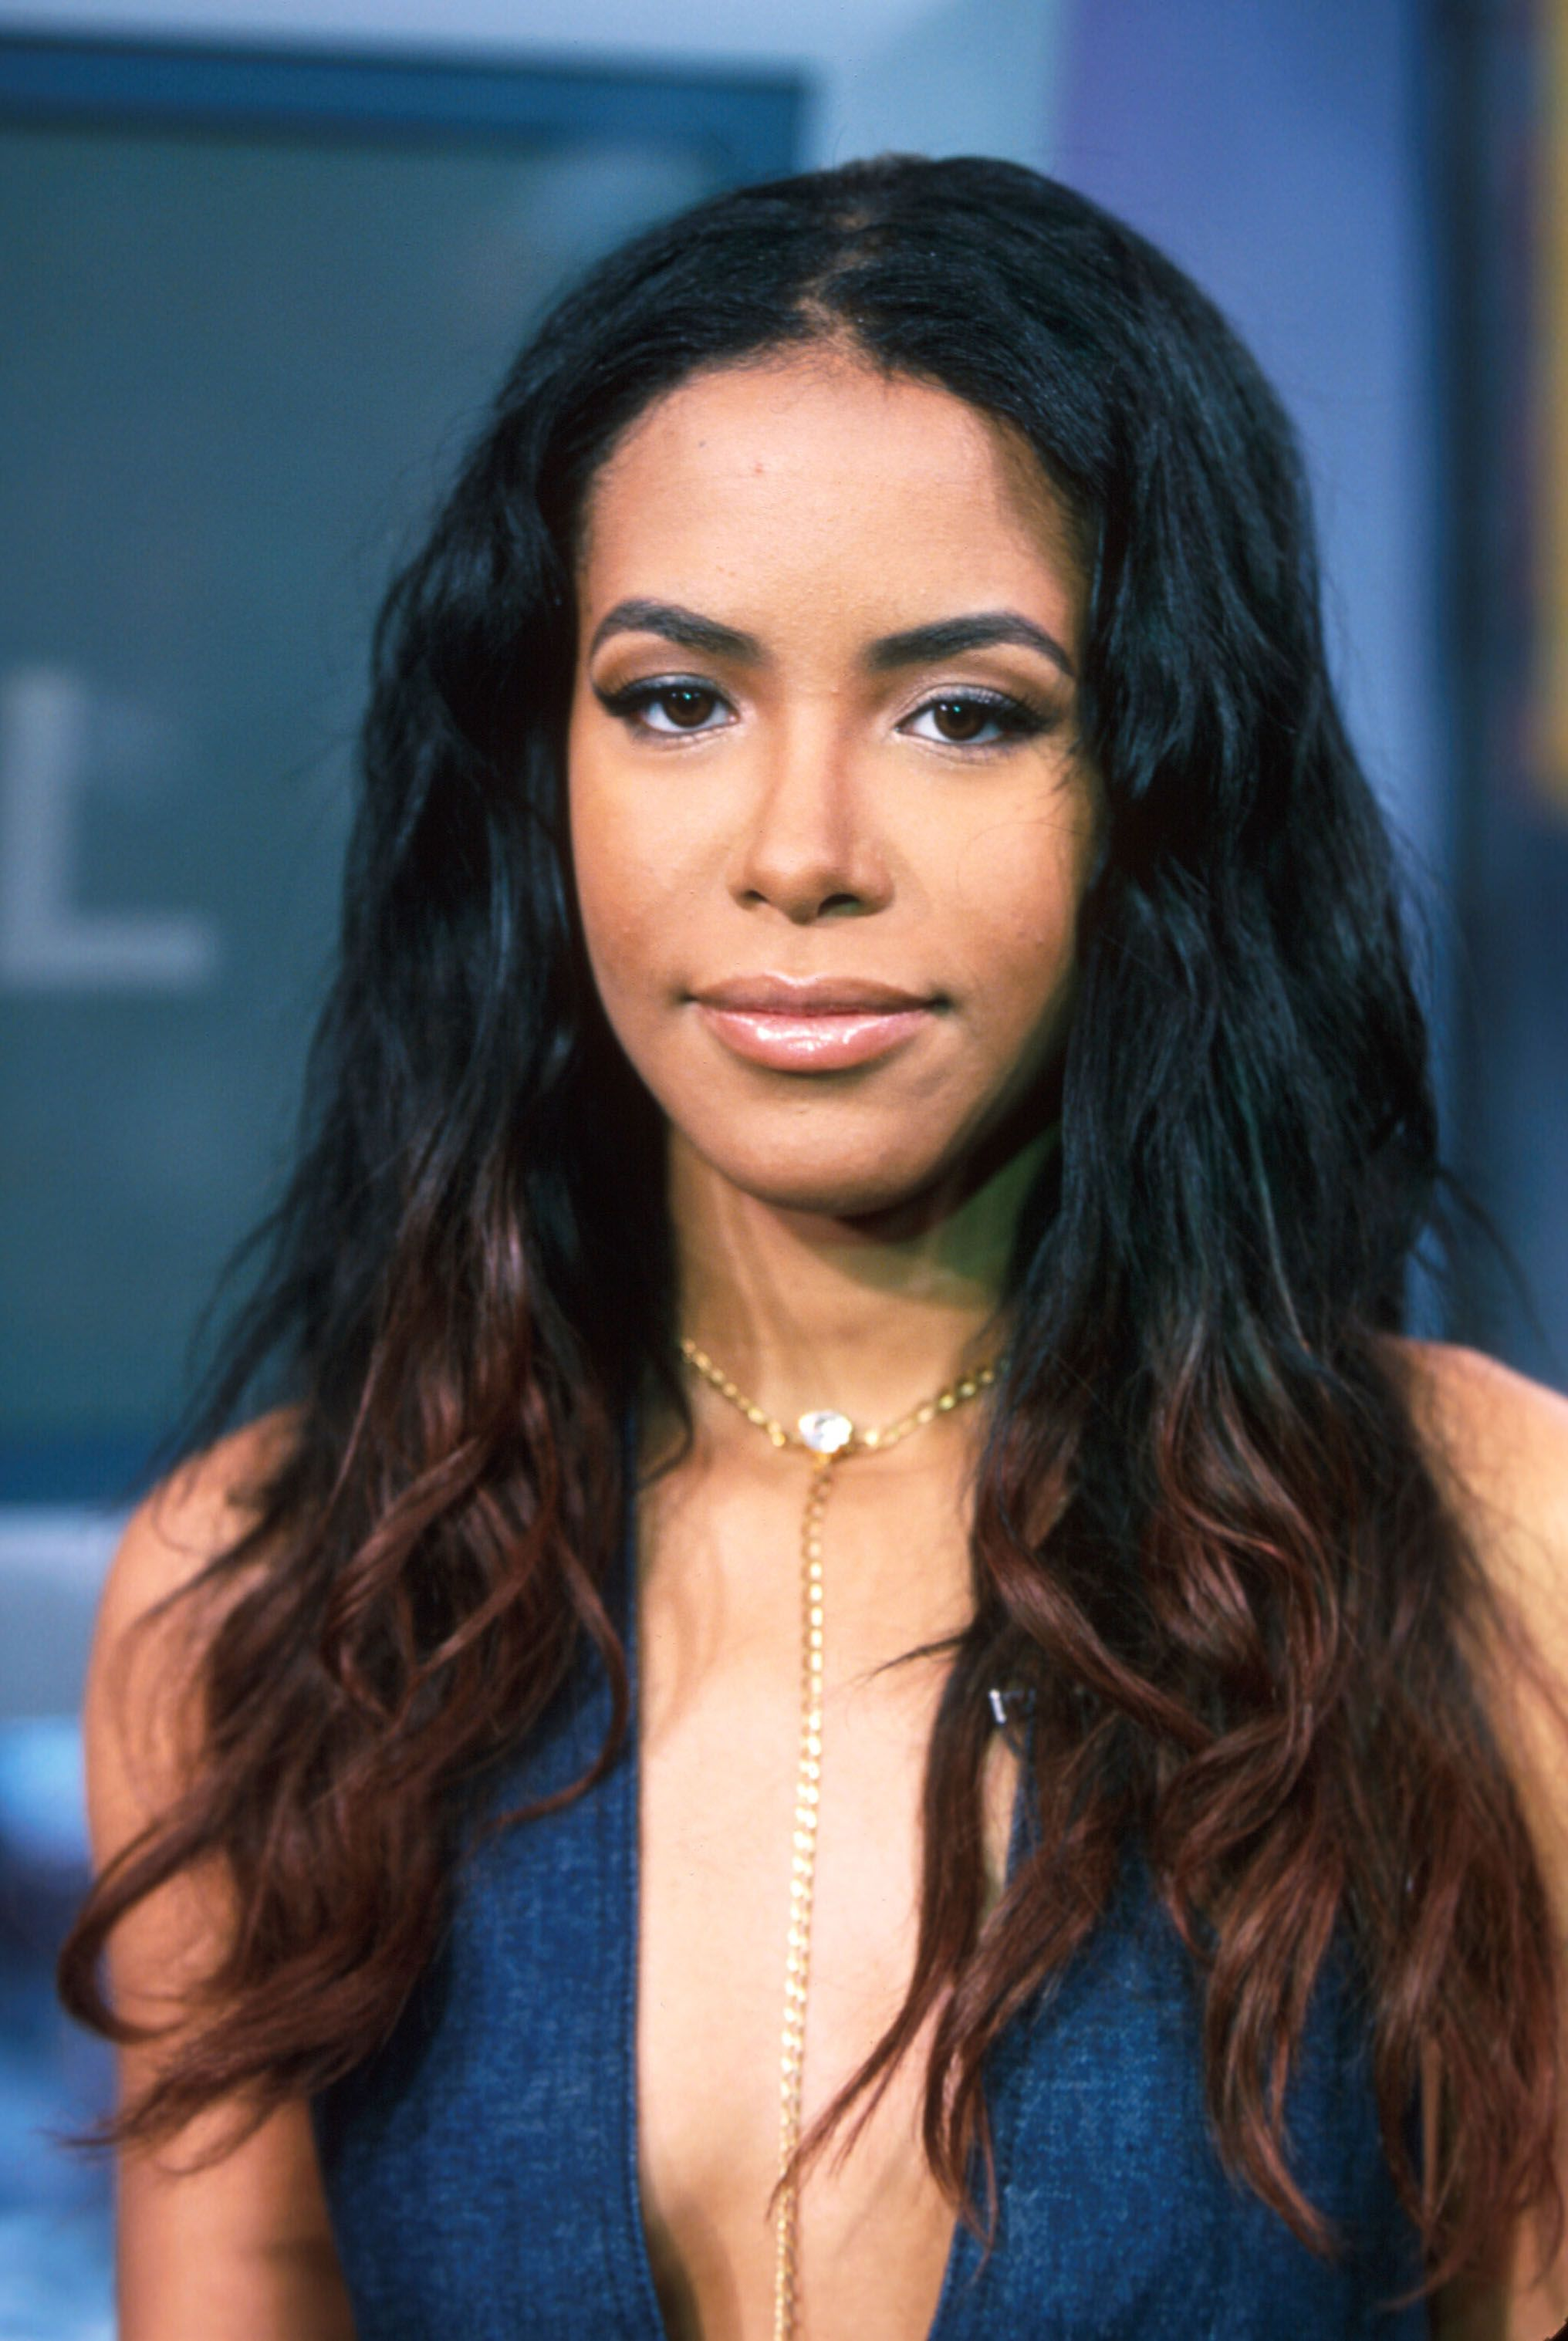 aaliyah one in a millionaaliyah try again, aaliyah dana haughton, aaliyah смерть, aaliyah песни, aaliyah mendes, aaliyah – are you that somebody, aaliyah one in a million, aaliyah i care 4 u, aaliyah died, aaliyah rock the boat, aaliyah причина смерти, aaliyah more than a woman, aaliyah miss you, aaliyah drake, aaliyah как умерла, aaliyah перевод, aaliyah are you feeling me, aaliyah are you that somebody скачать, aaliyah are you that somebody mp3, aaliyah enough said